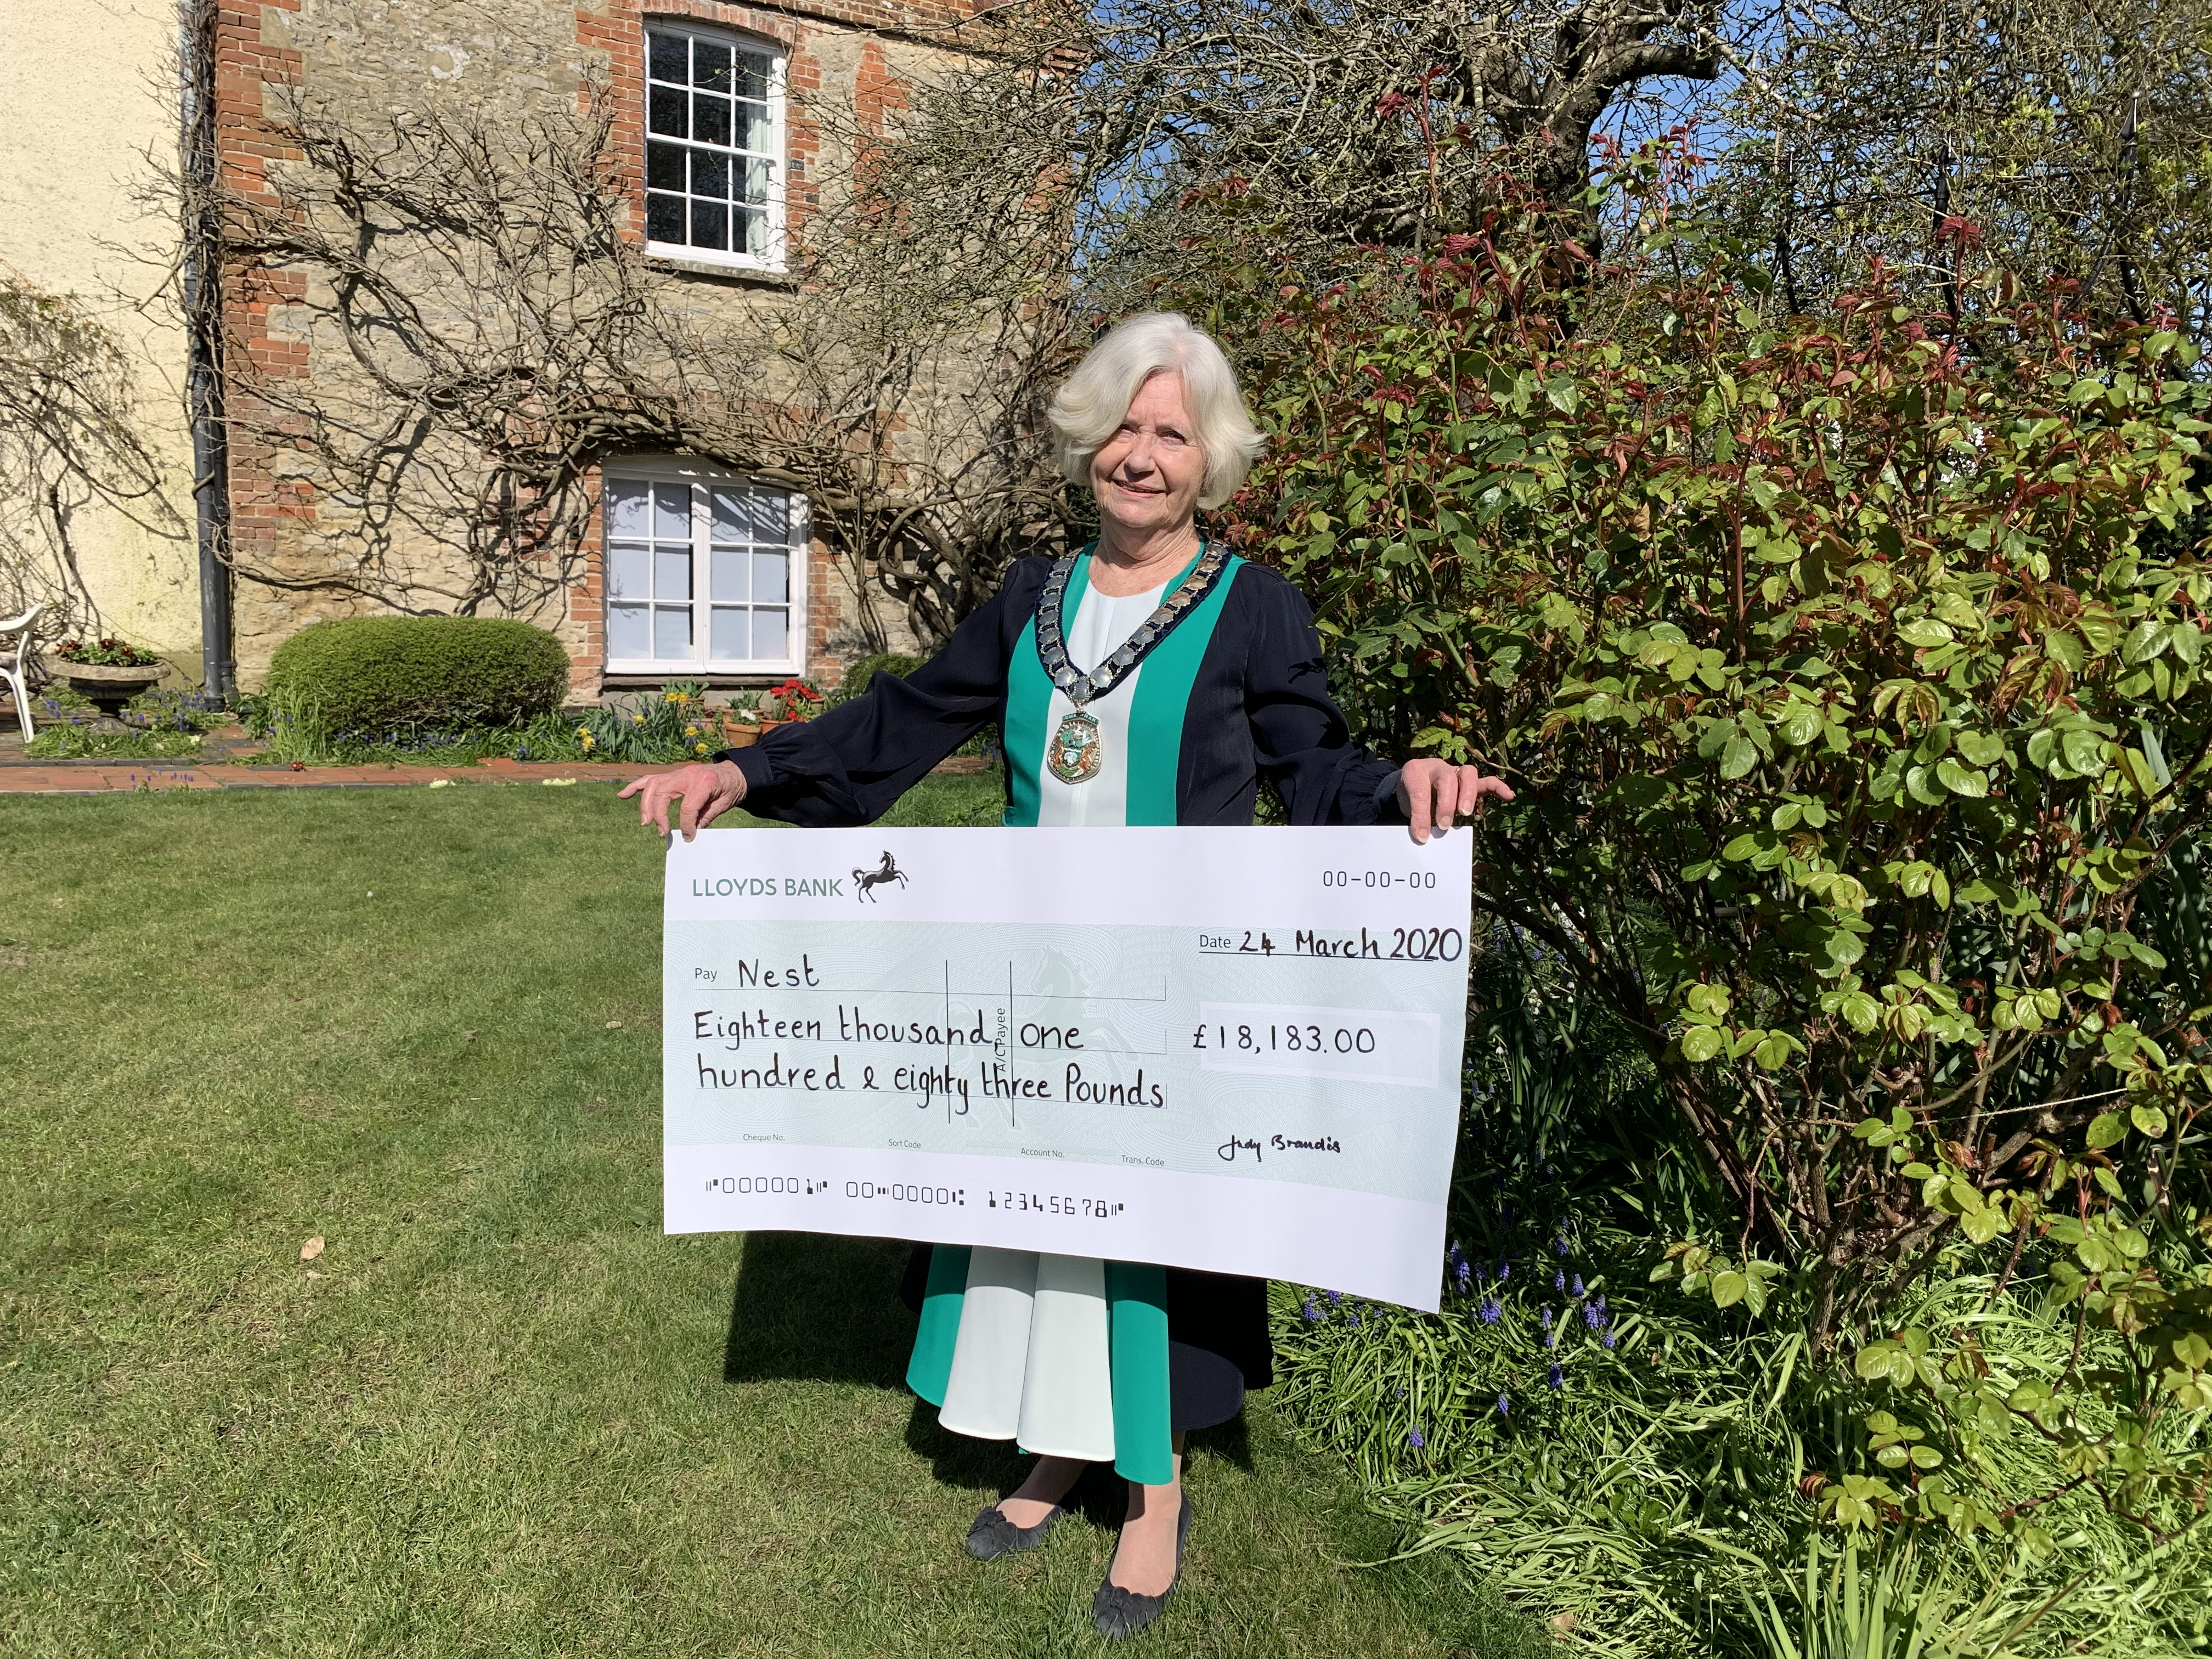 Cllr Judy Brandis in her her garden with the presentation cheque for Nest Aylesbury Vale for £18,183